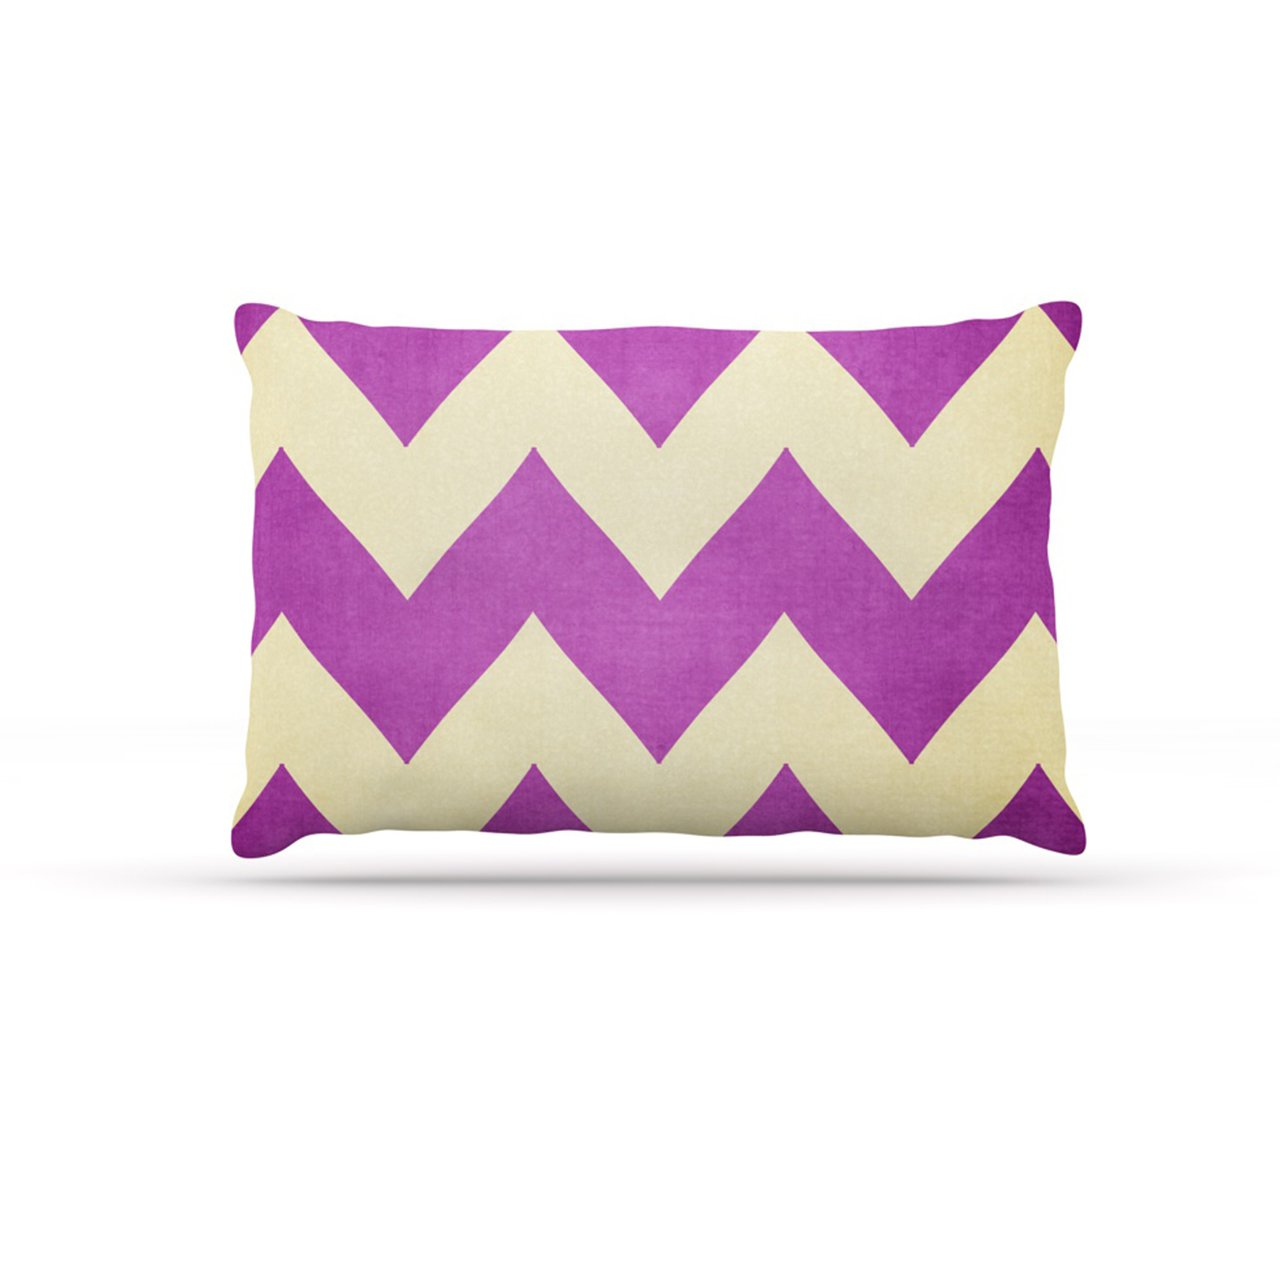 Juicy Chevron L 30 Inches x 40 Inches Juicy Chevron L 30 Inches x 40 Inches Kess InHouse Catherine McDonald Juicy Chevron Fleece Dog Bed, 30 by 40-Inch